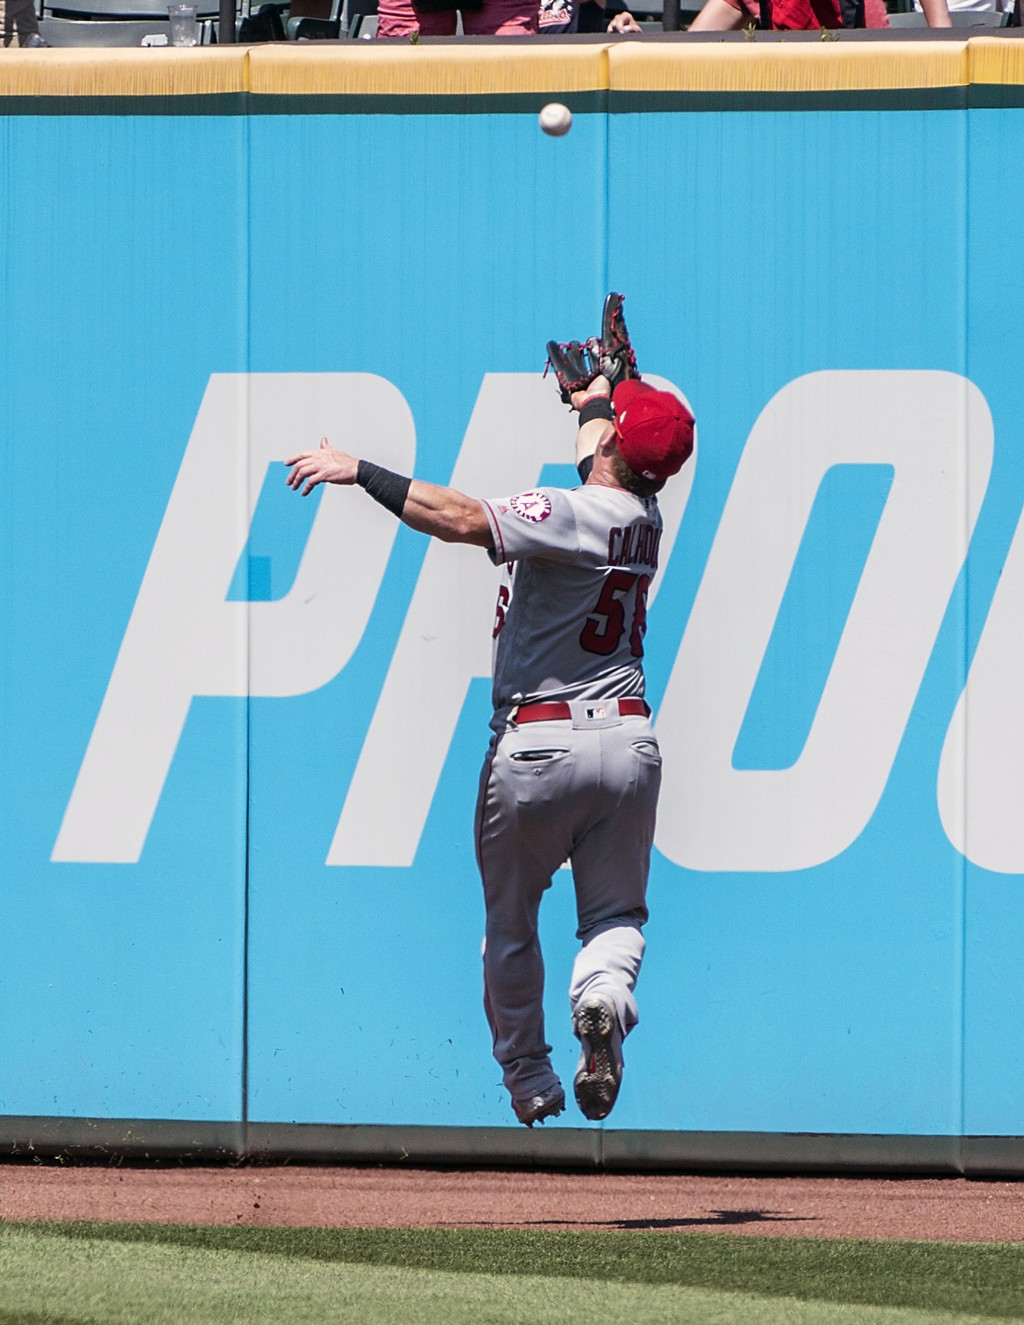 Los Angeles Angels' Kole Calhoun misses a fly ball by Cleveland Indians' Jordan Luplow during the fourth inning of a baseball game in Cleveland, Sunda